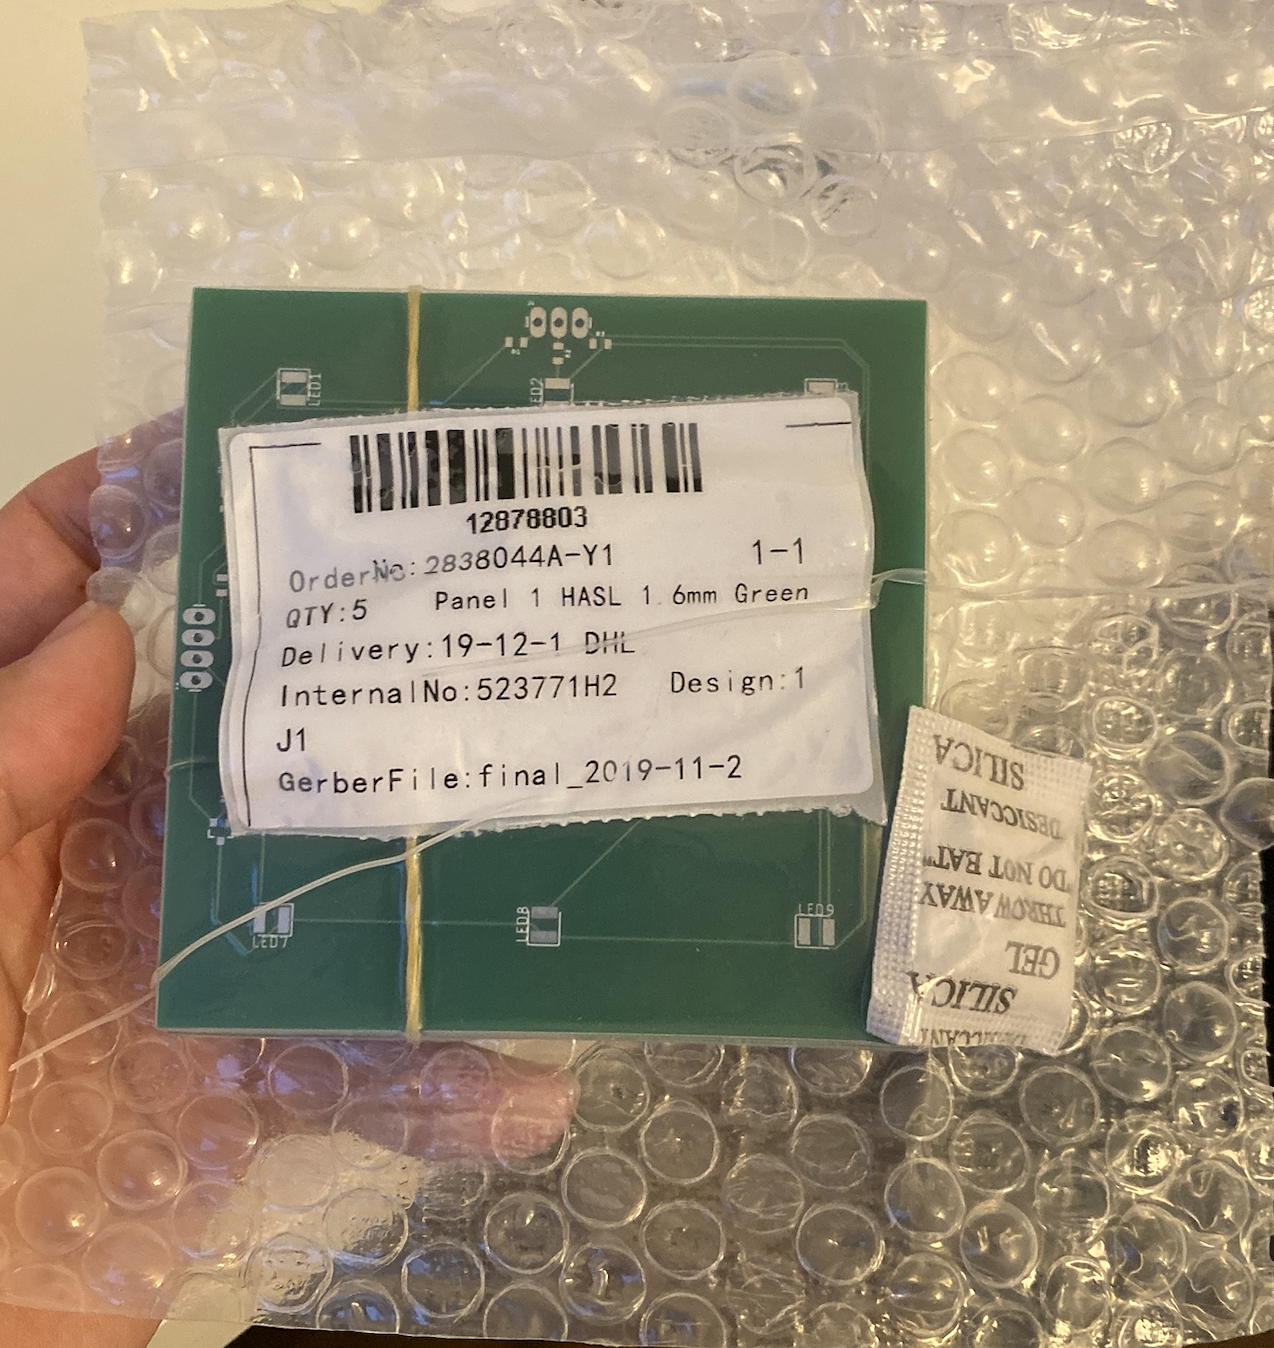 PCBboards packaged after being sent out.